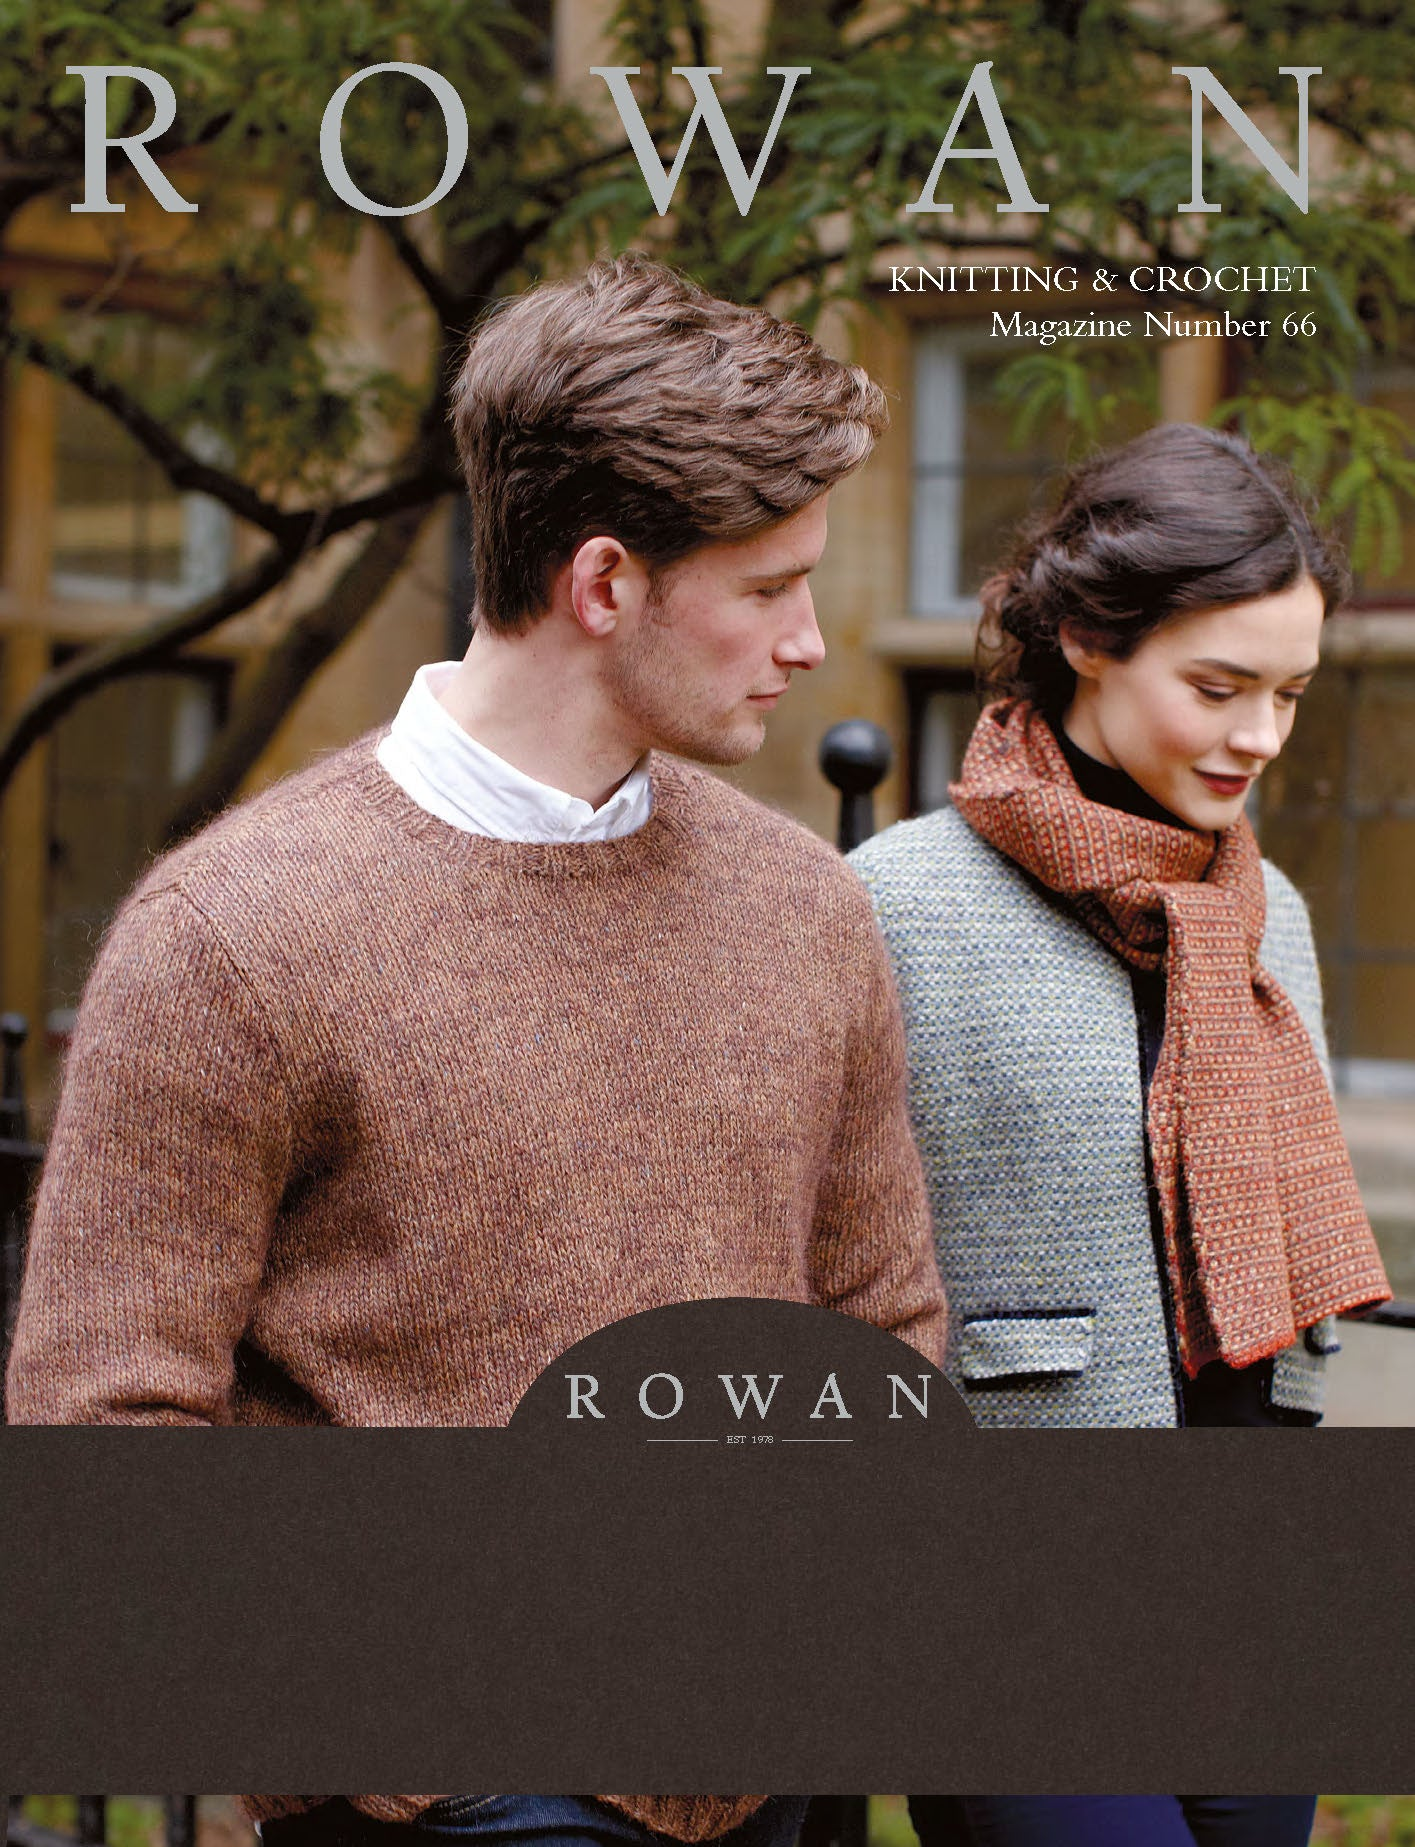 Rowan Knitting & Crochet Magazine 66 (Whole Magazine)